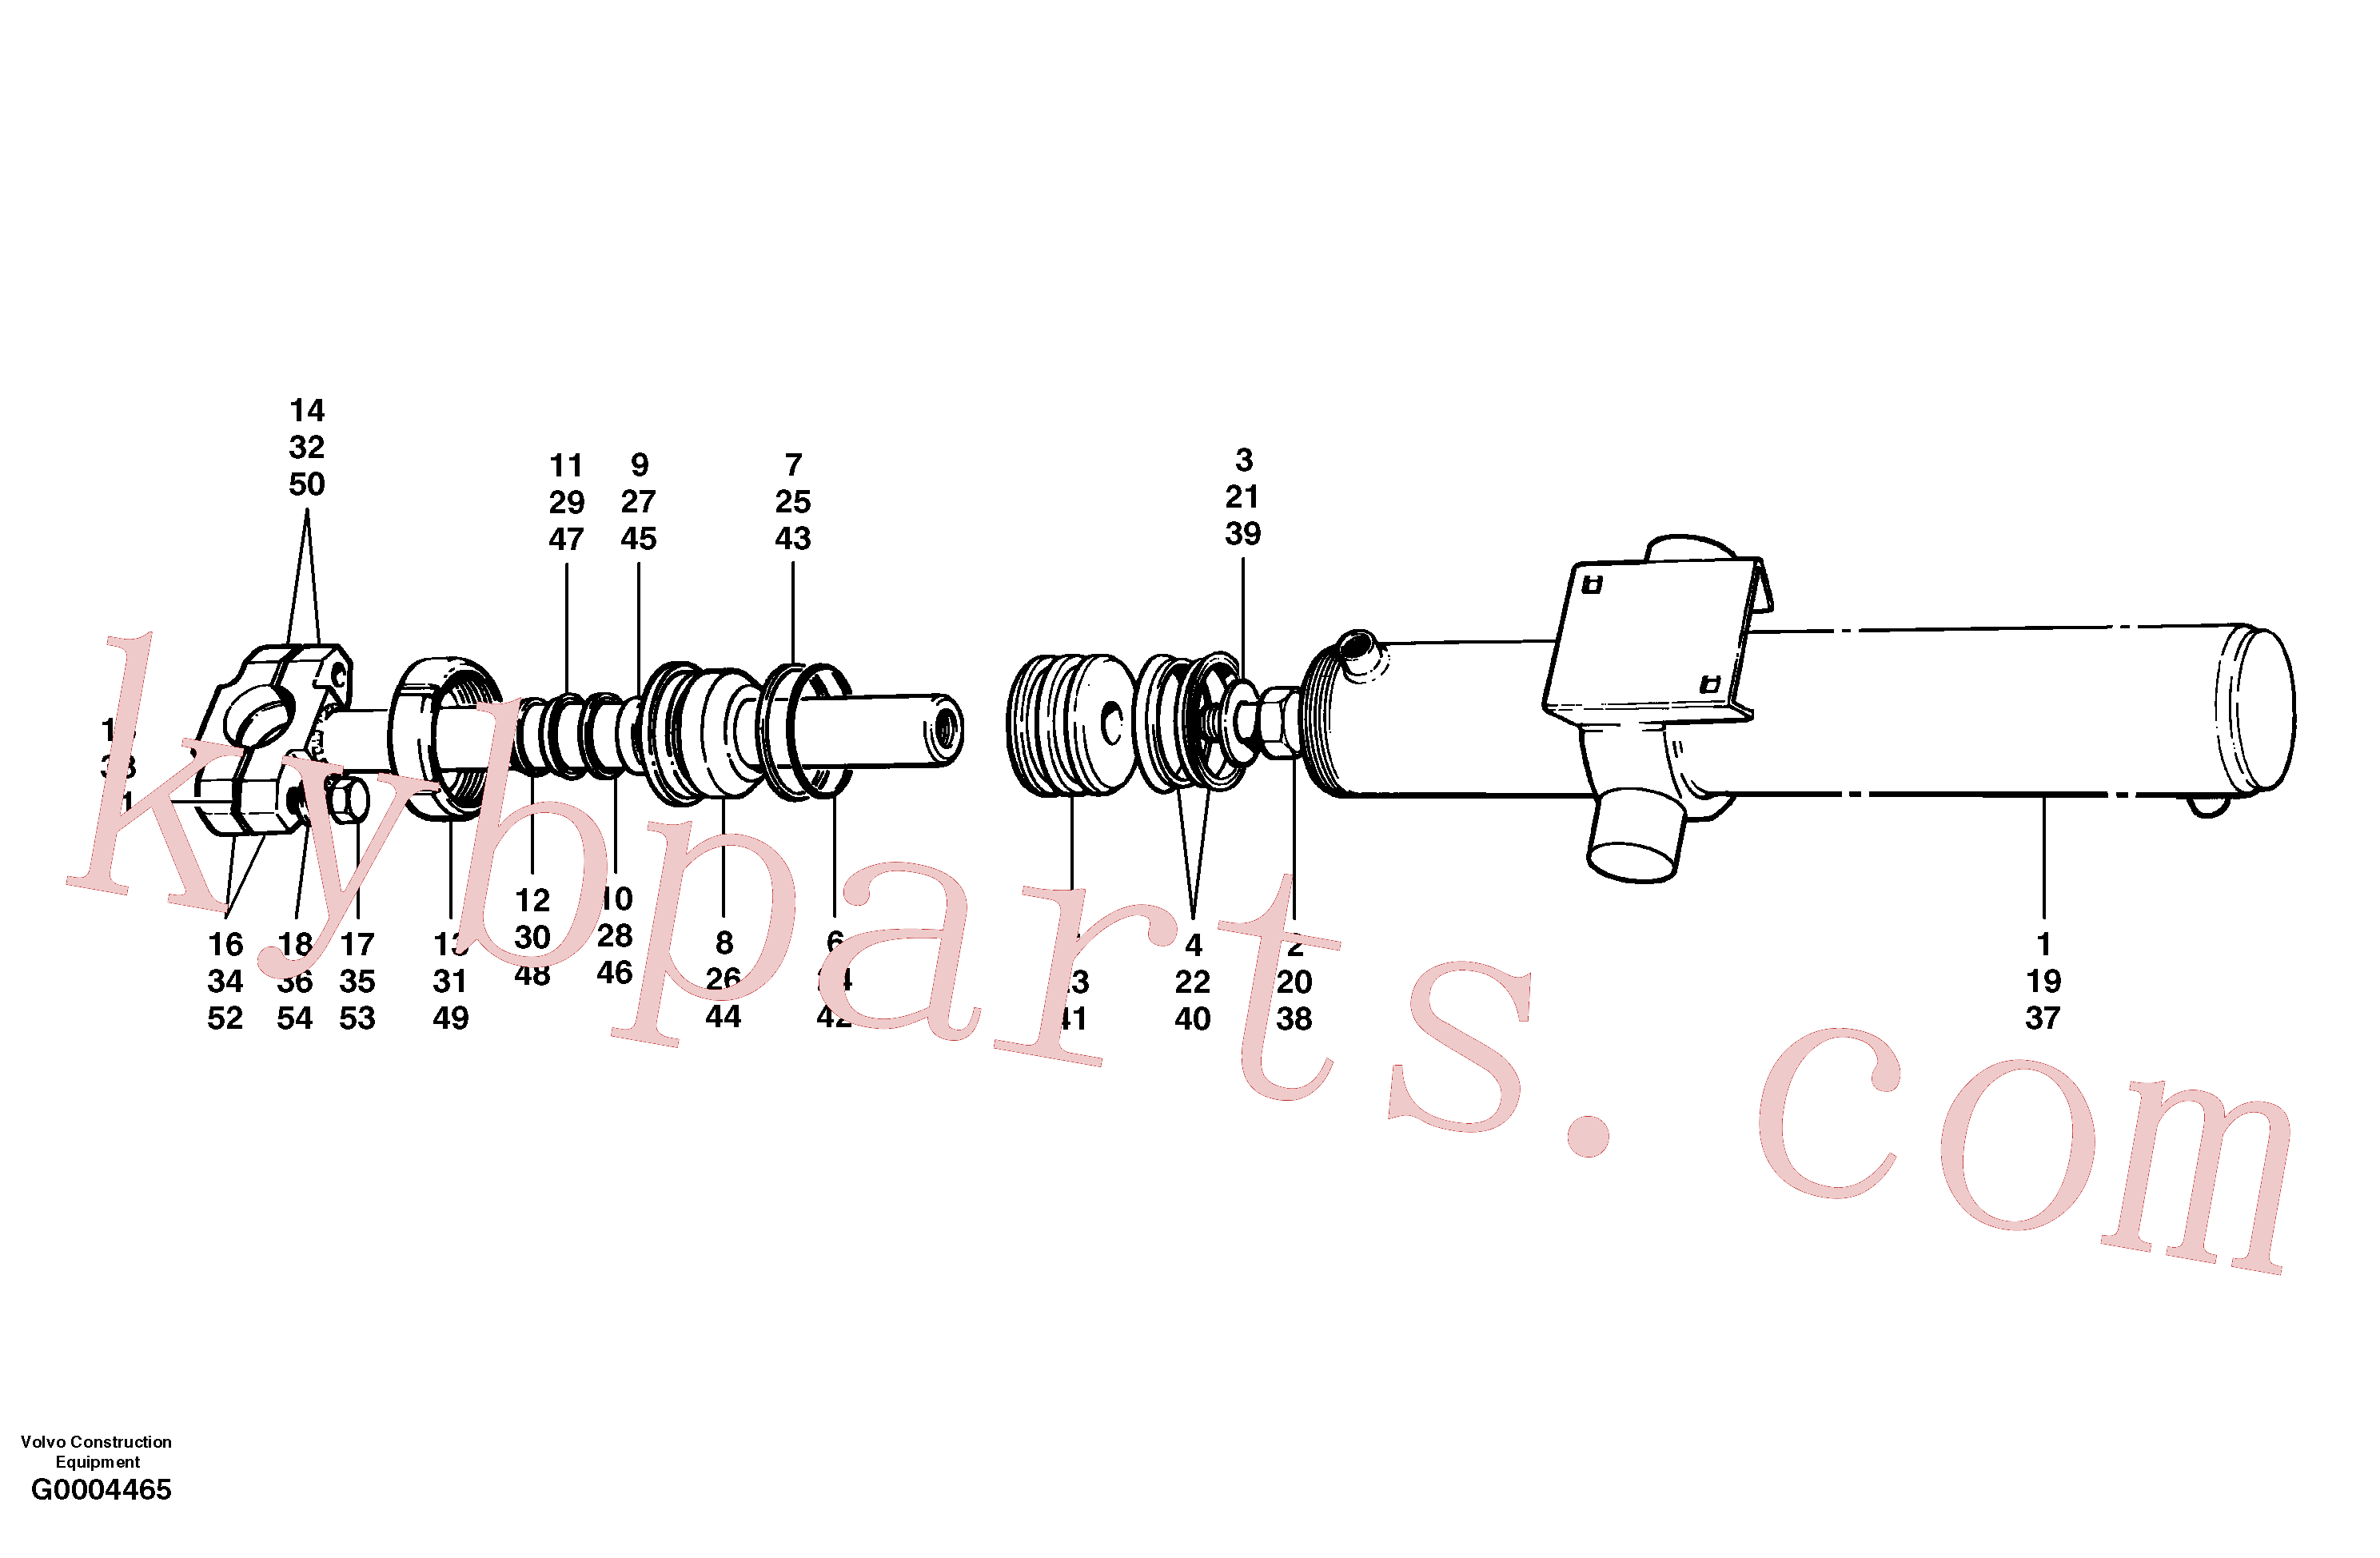 CH97828 for Volvo Blade lift cylinders(G0004465 assembly)